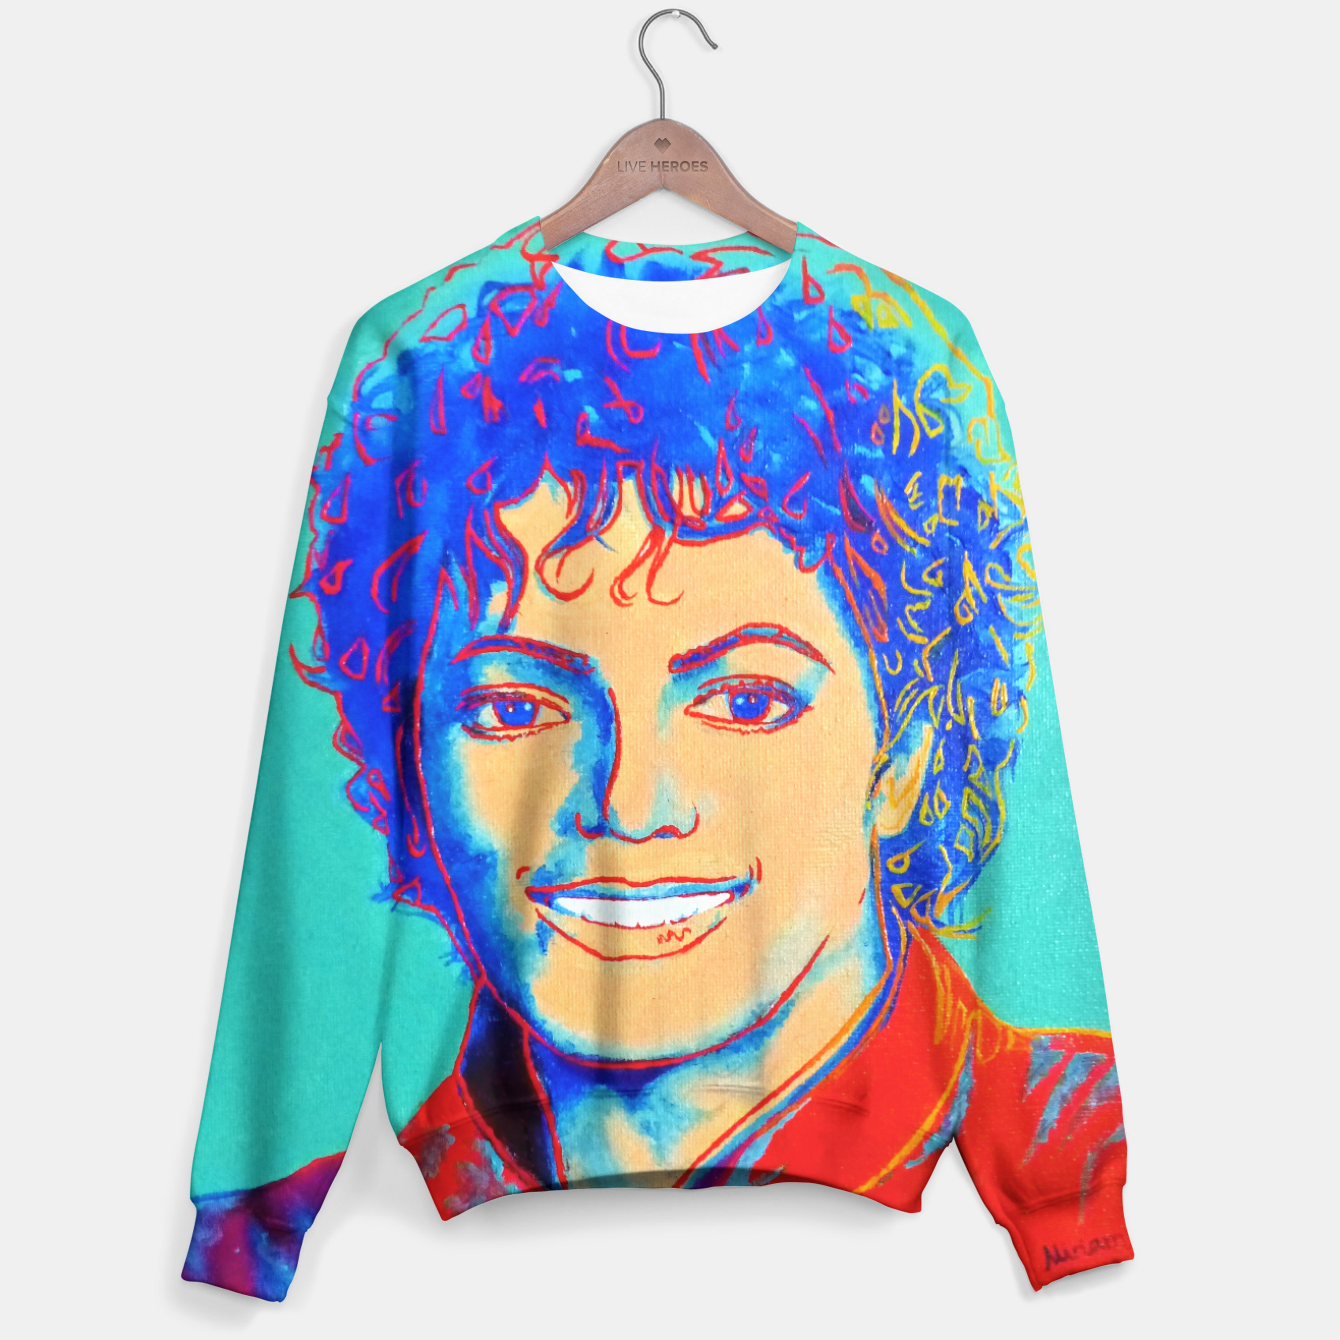 Image Of Michael Jackson Andy Warhol Fanart Sweater Live Heroes